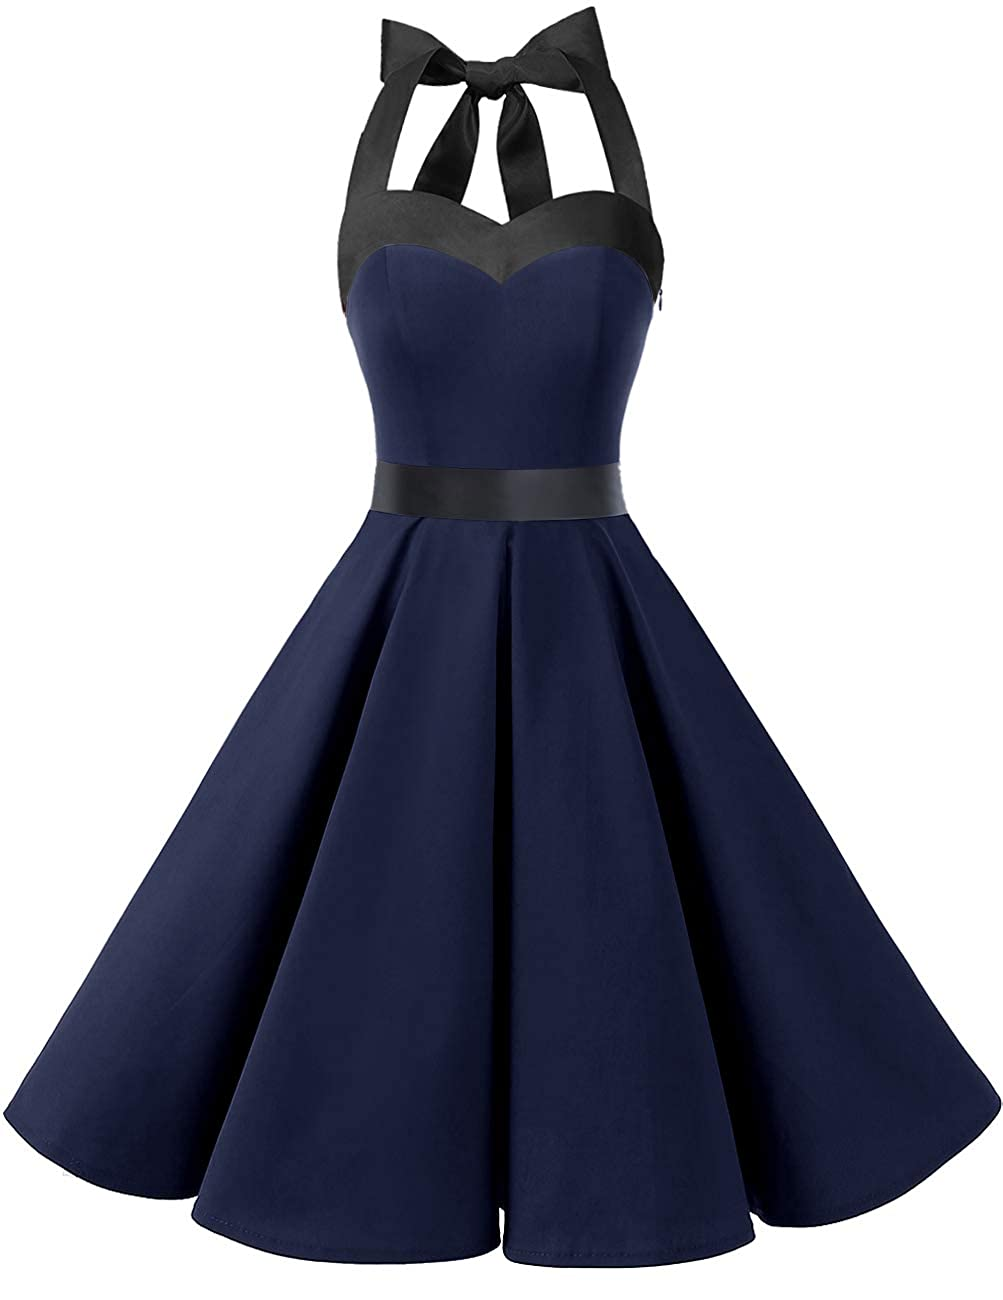 TALLA S. Dresstells® Halter 50s Rockabilly Polka Dots Audrey Dress Retro Cocktail Dress Navy Black S